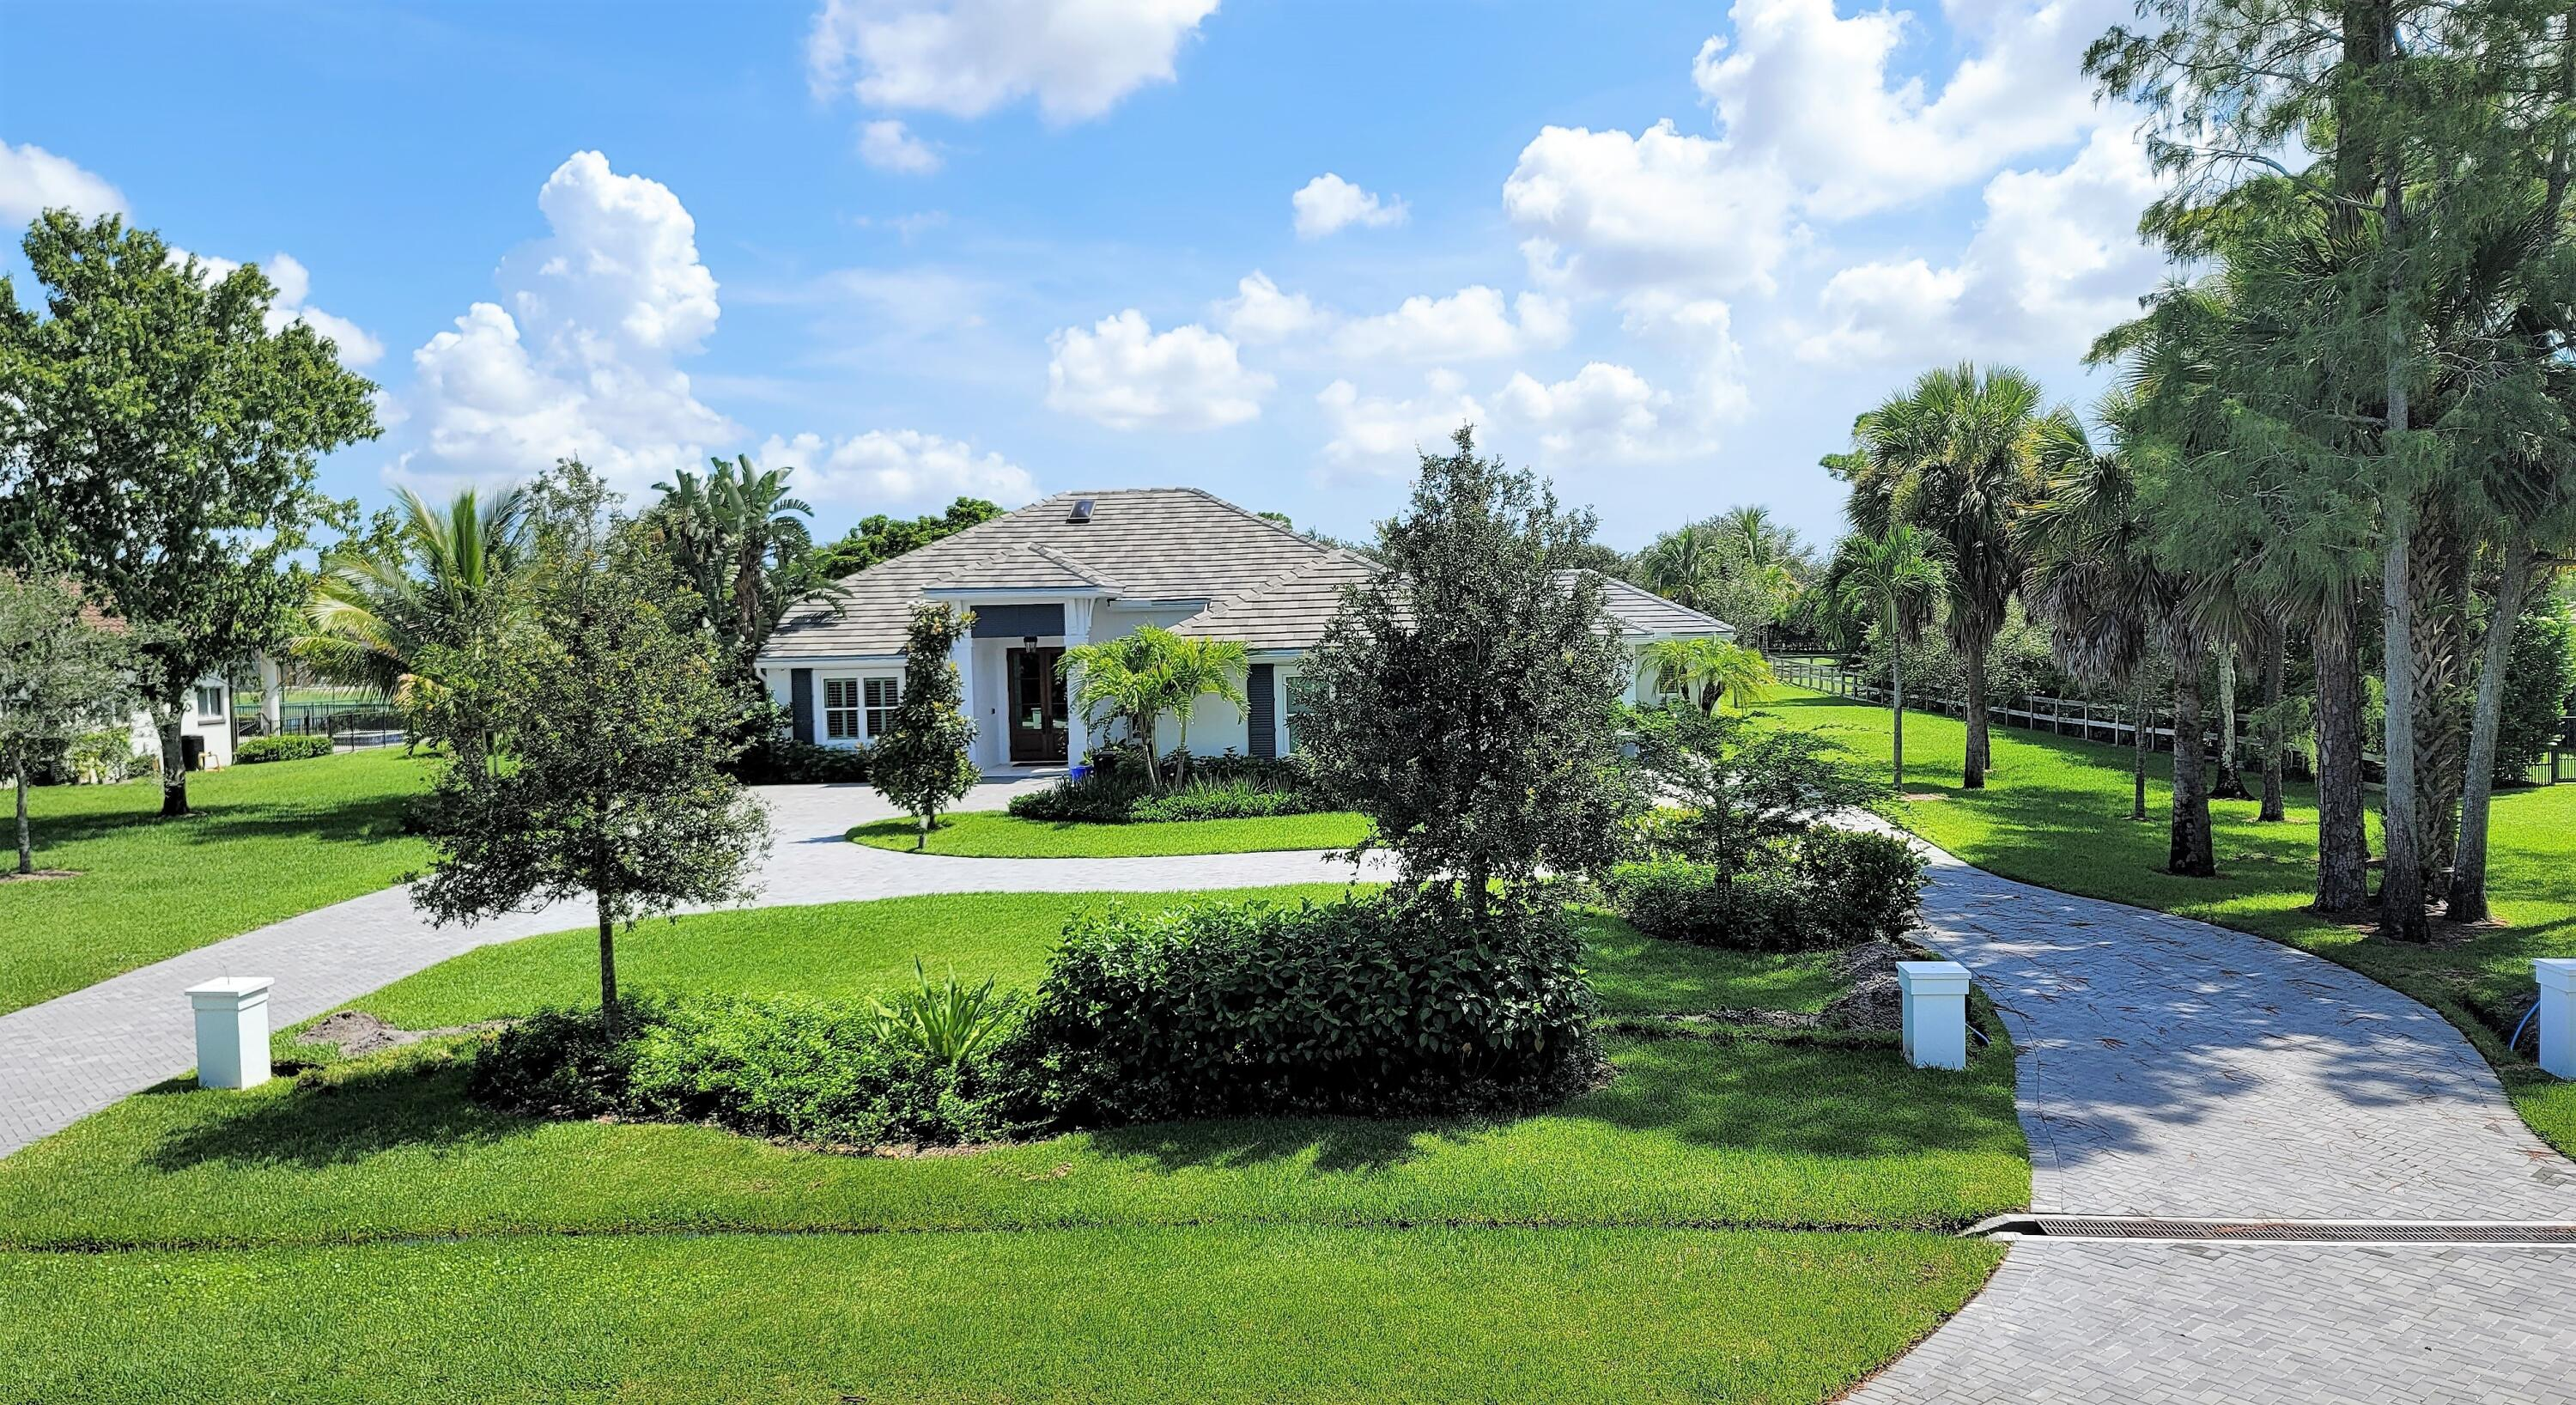 Rare Coastal style remodeled home. Newly remodeled interior, with new addition. New circular driveway. Amazing lot with pool.  Home now has 5 bedrooms with a den! New Dual Hot Water Heaters. 40 gallon tank bedroom wing 2016. New gas tankless water heater master wing 2018Ac all common and addition new 9/2020Master condenser 2013, but air handler unit new 2019 Appliances new 12/17 Pool equip all new Pentair 2019. Energy efficient Icynene Insulation 2020 whole house. New septic drain field and lift stations 12/2020 Prewired for generatorImpact glass 2014New roof 2017Roll down phantom bug screen on main porch New entry door 2020 New circular driveway 2020